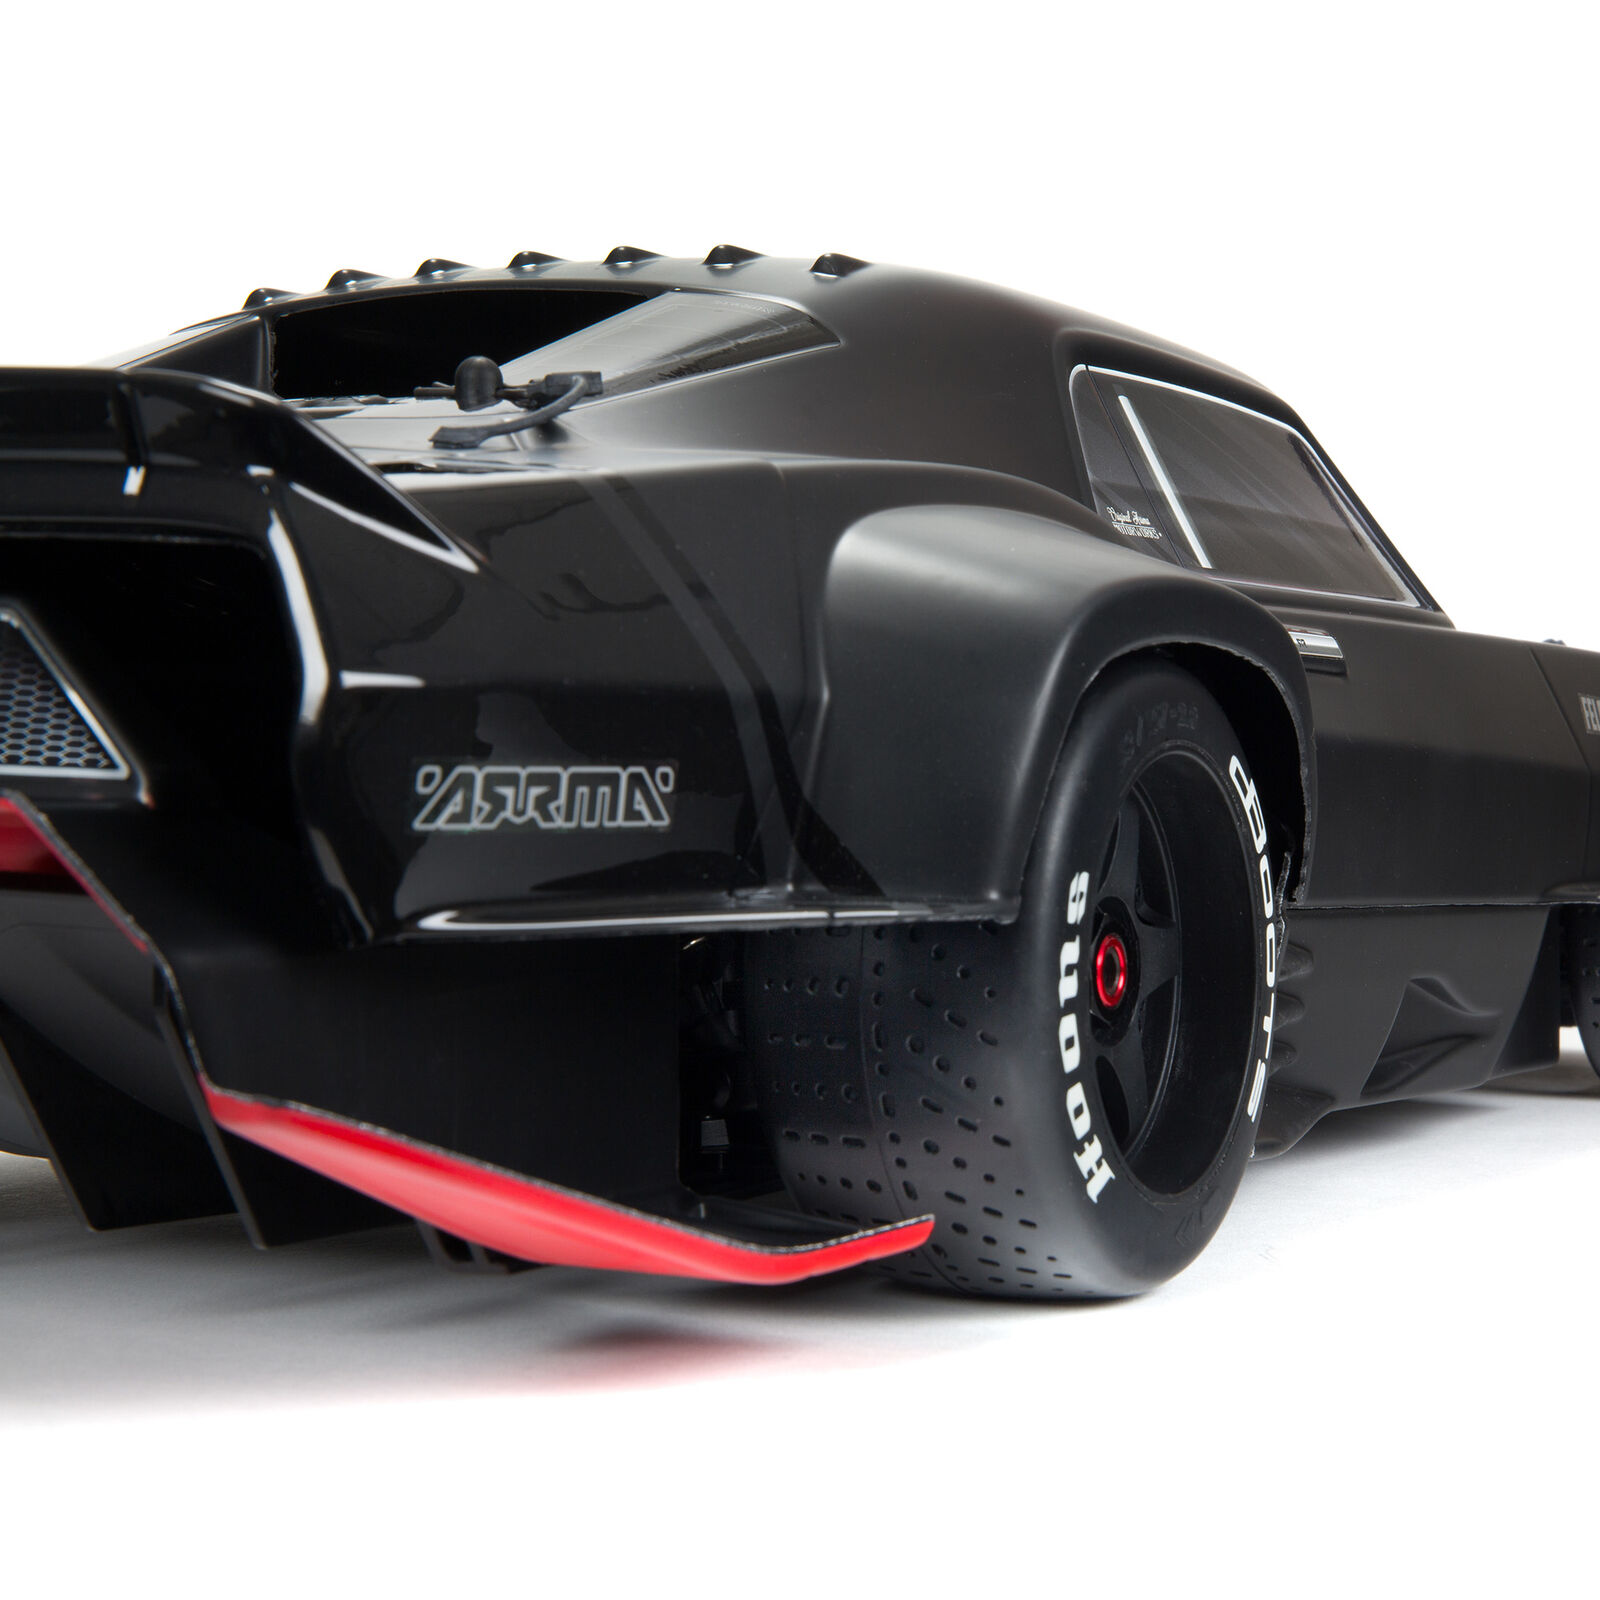 1/7 FELONY 6S BLX Street Bash All-Road Muscle Car RTR, Black